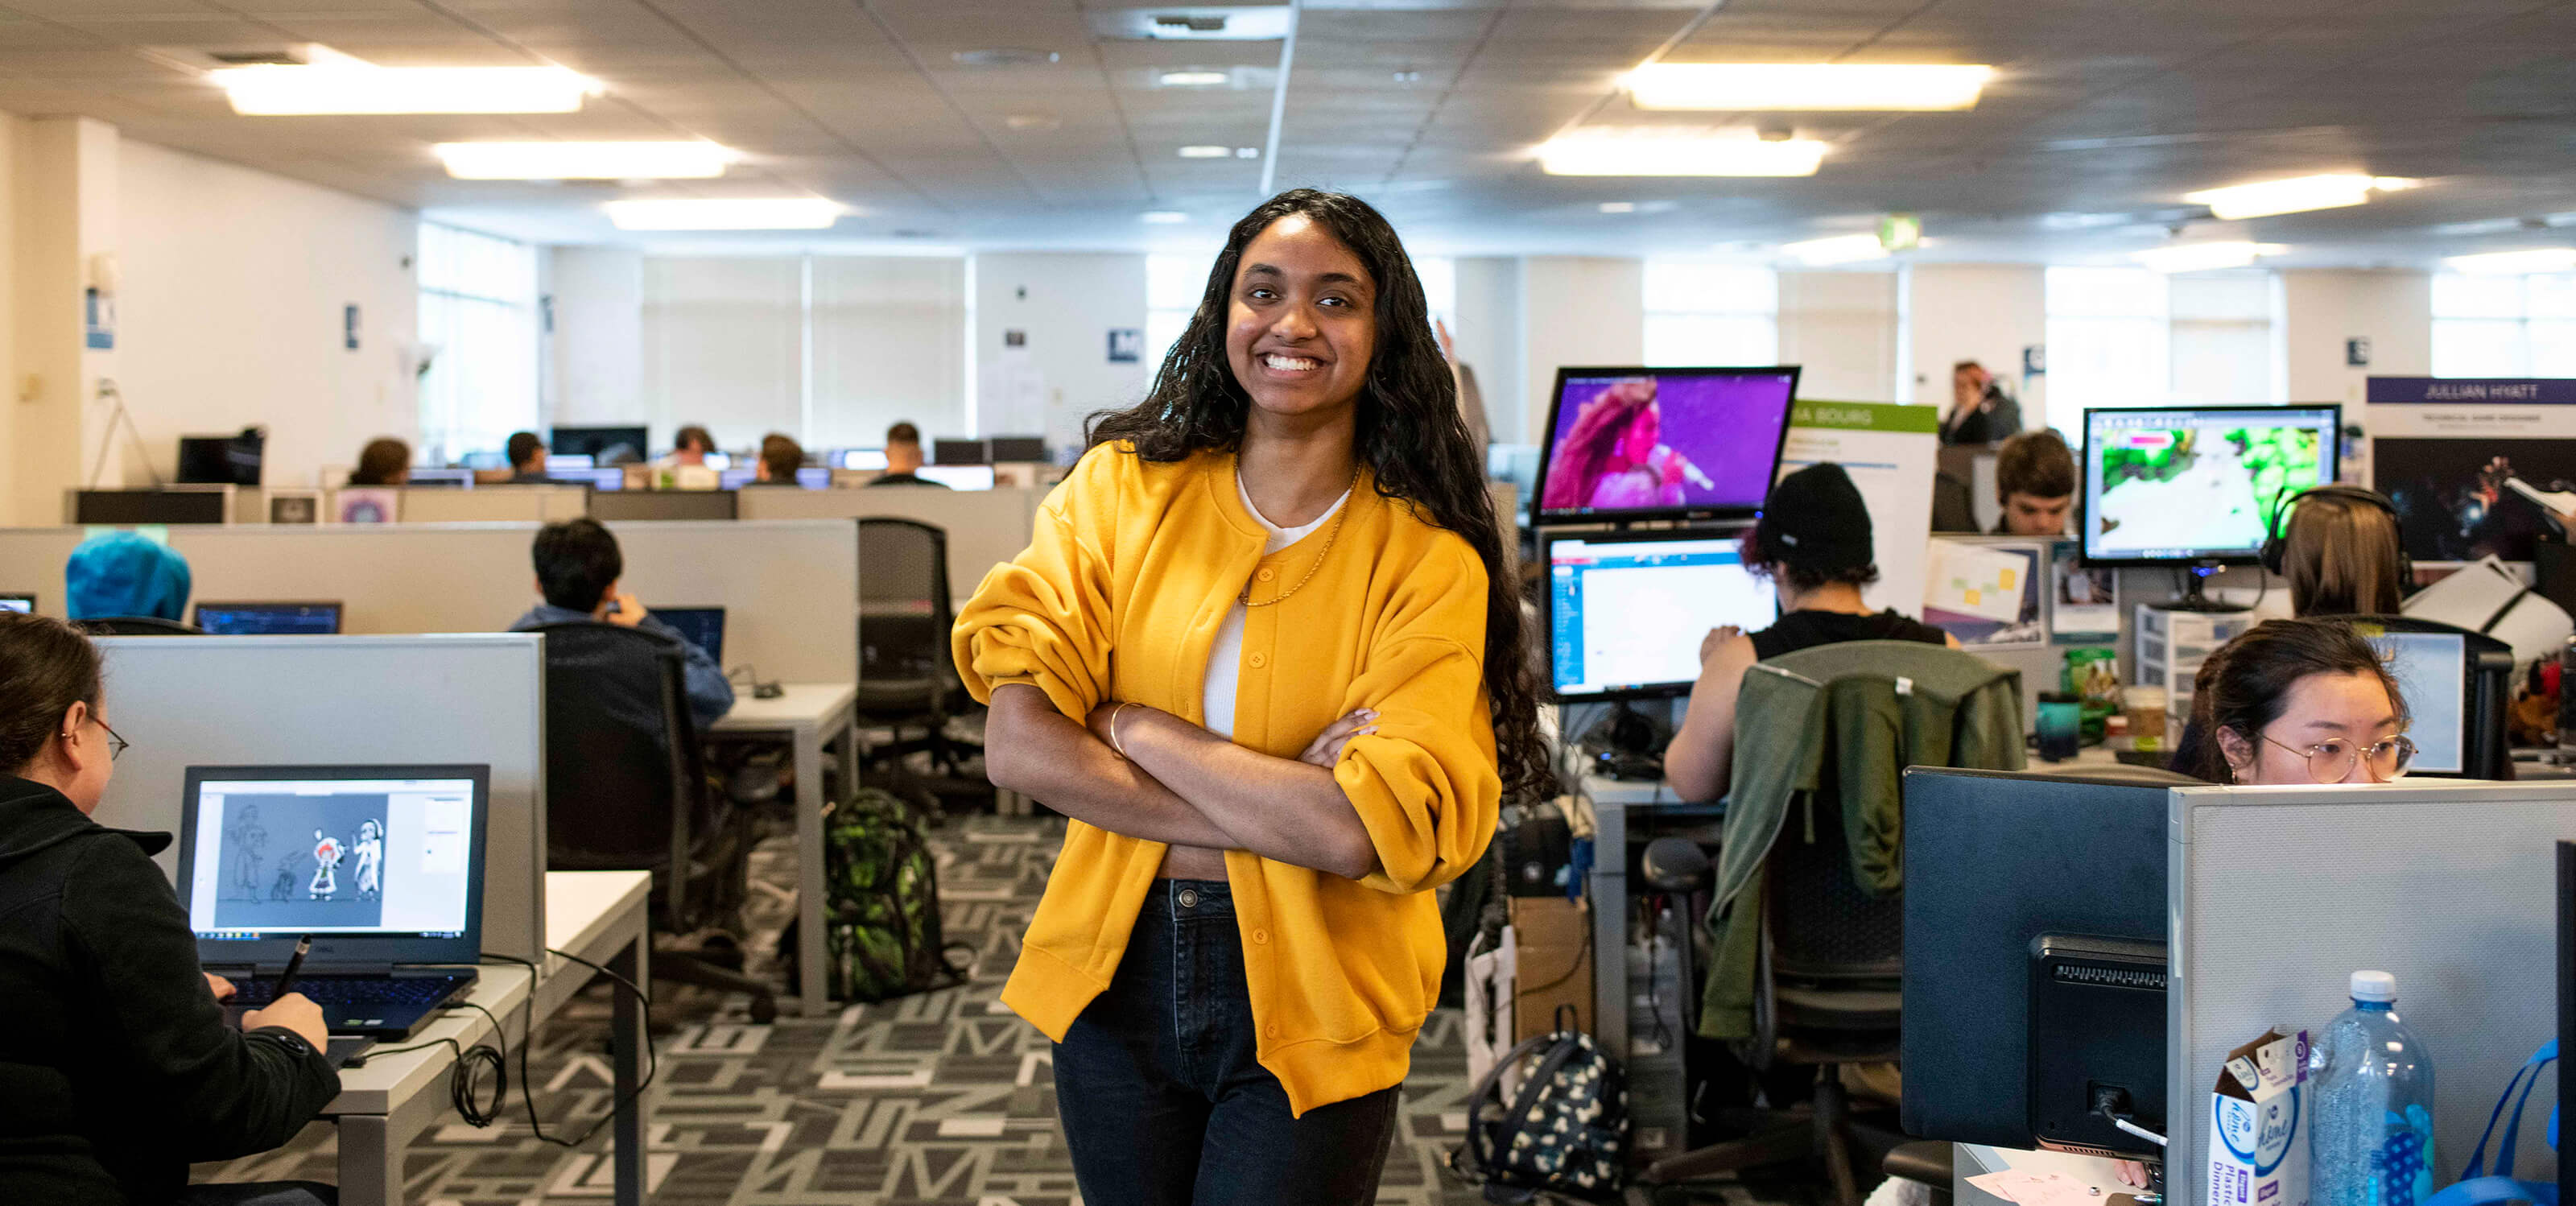 Student Shannon Parayil smiles and stands in the Tesla computer lab on campus, in between rows of team spaces where students are working on projects.